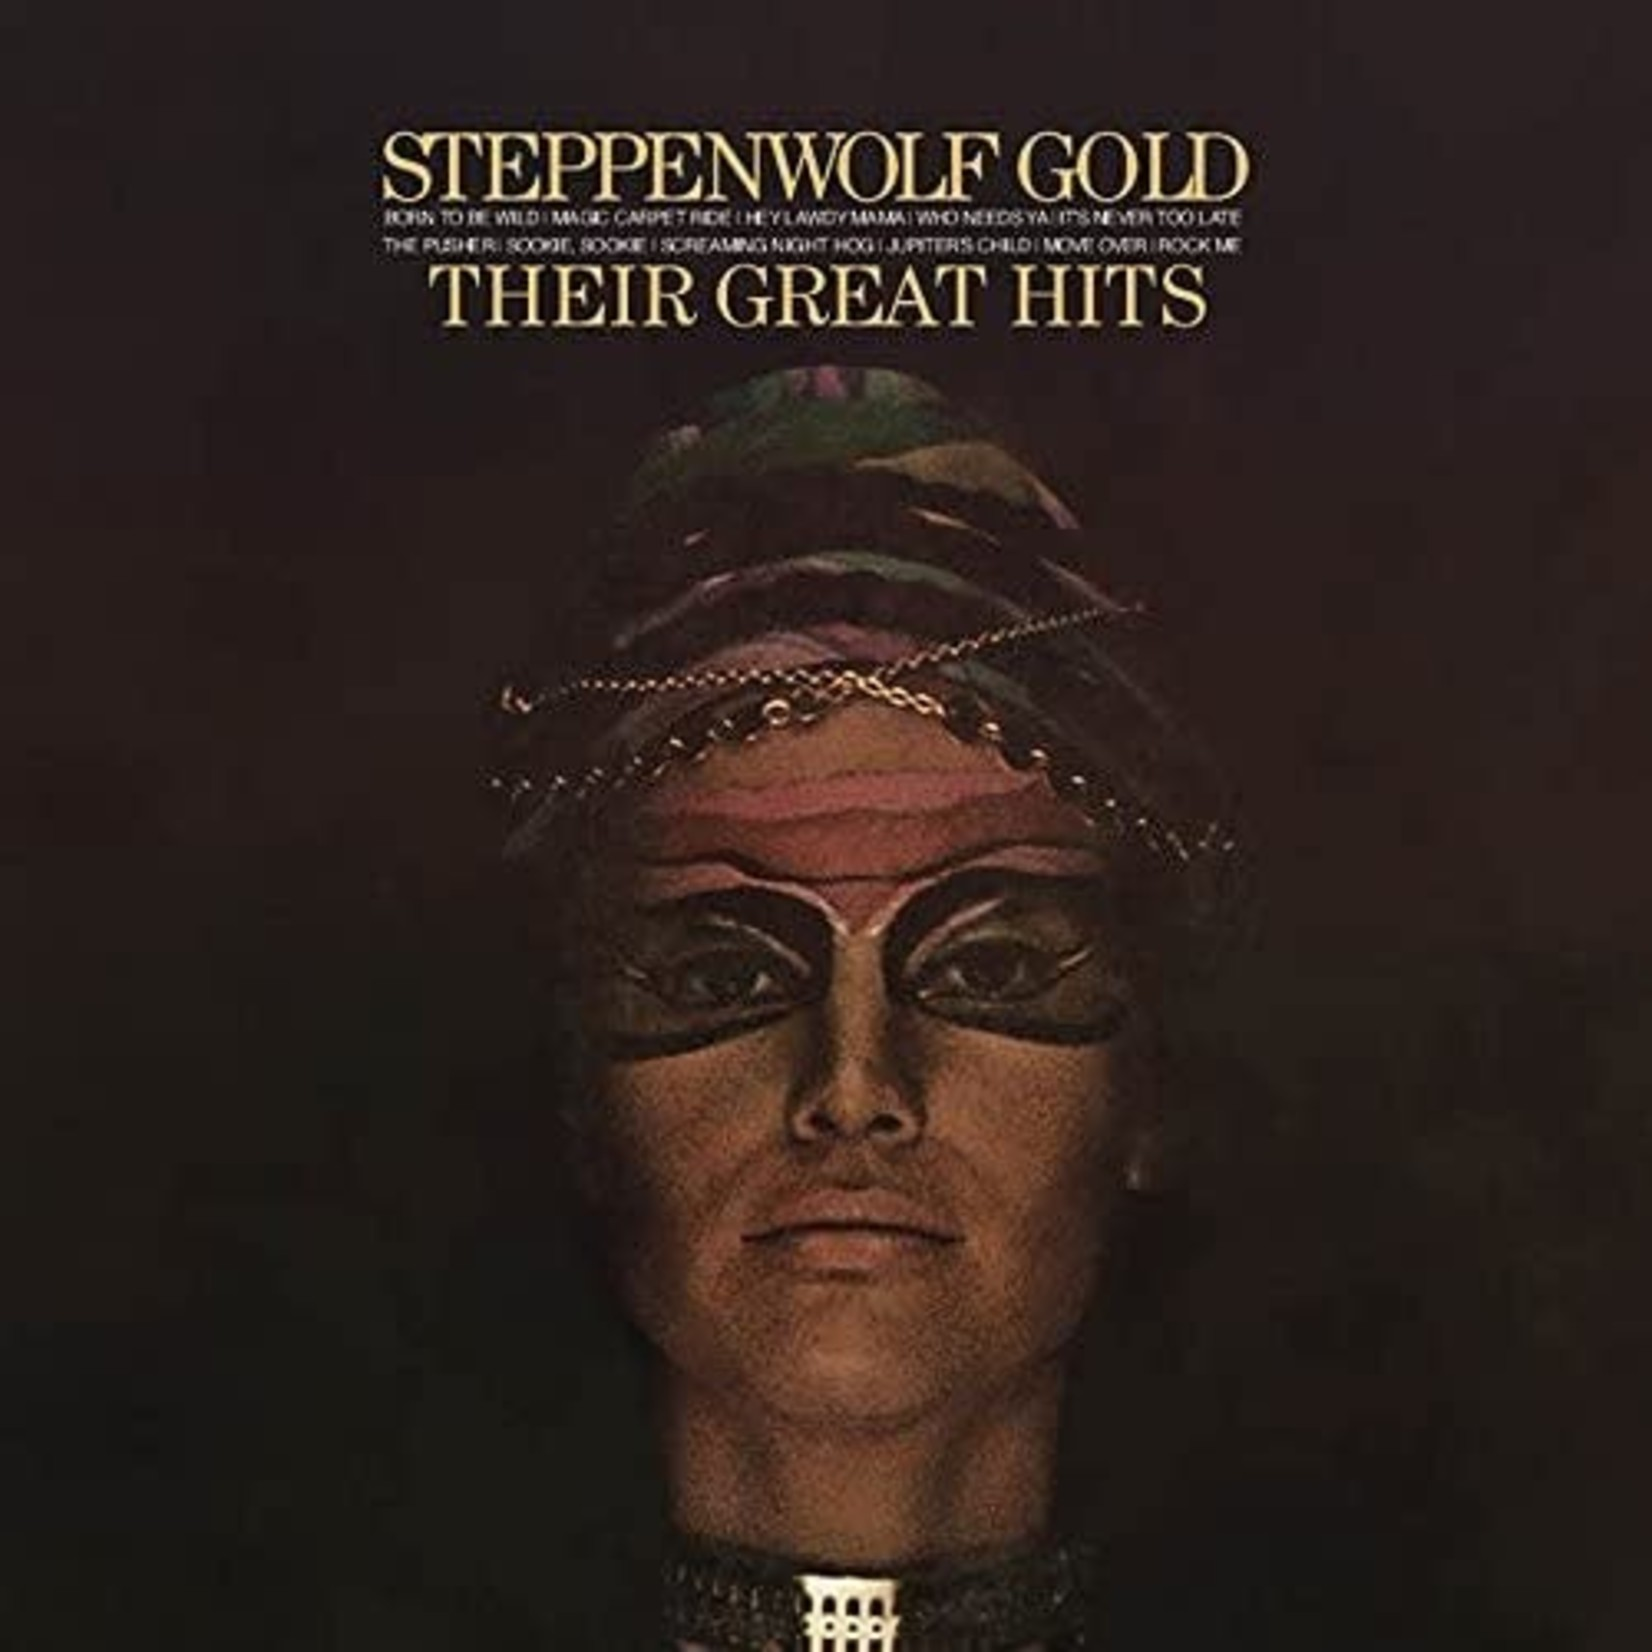 Vinyl Steppenwolf - Gold  (Acoustic Sounds)